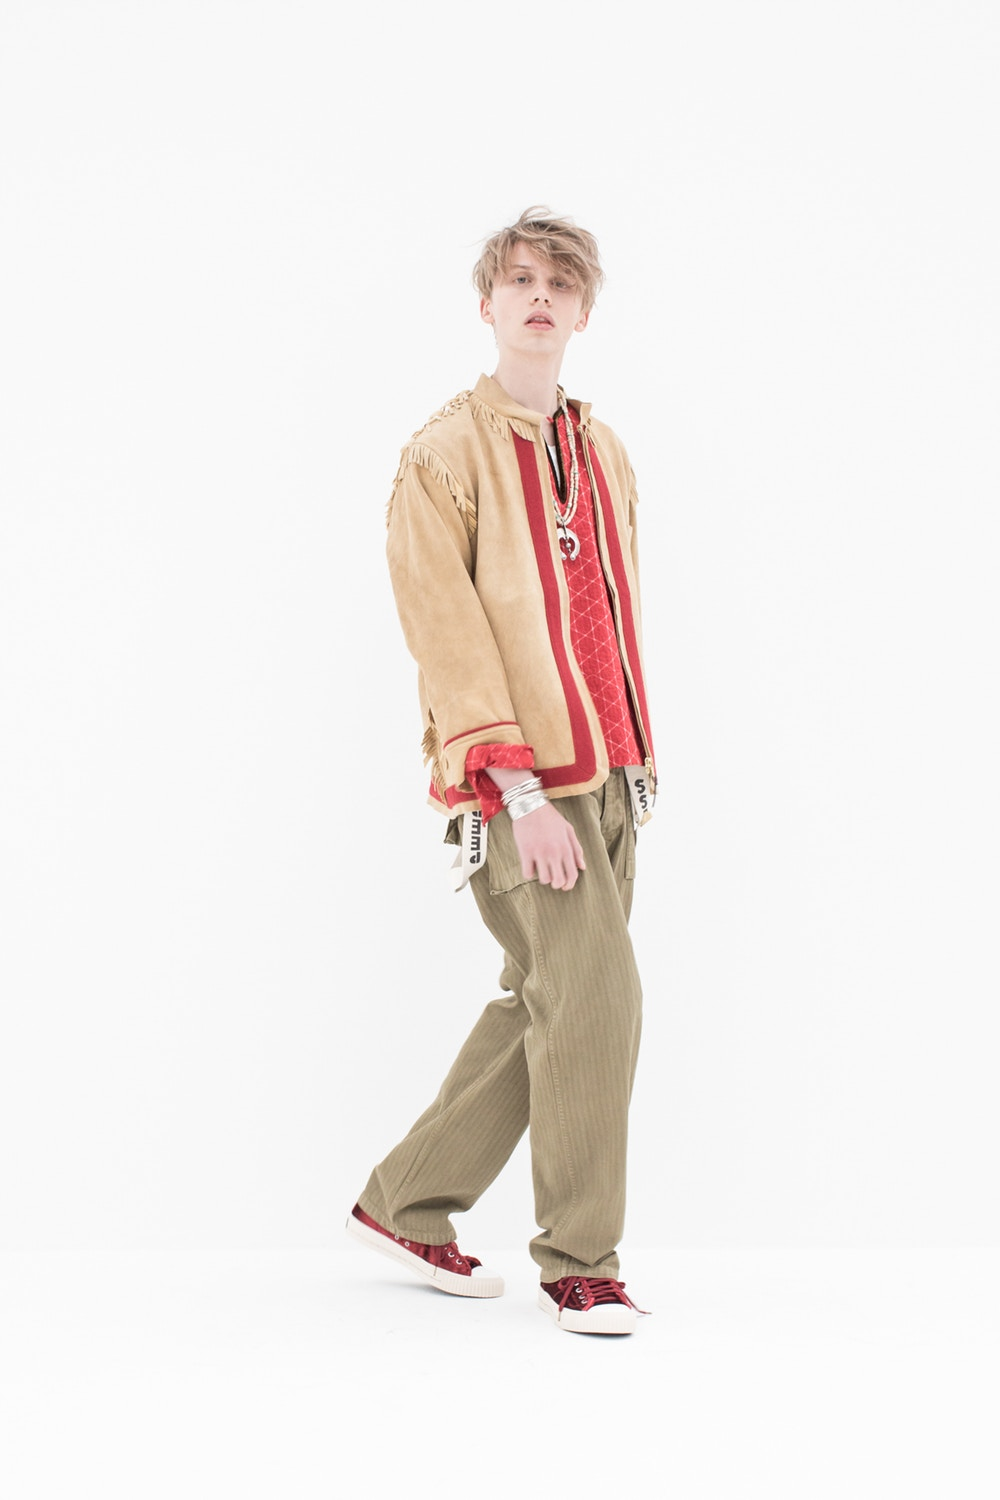 visvim-2018-fall-winter-lookbook-6.jpg